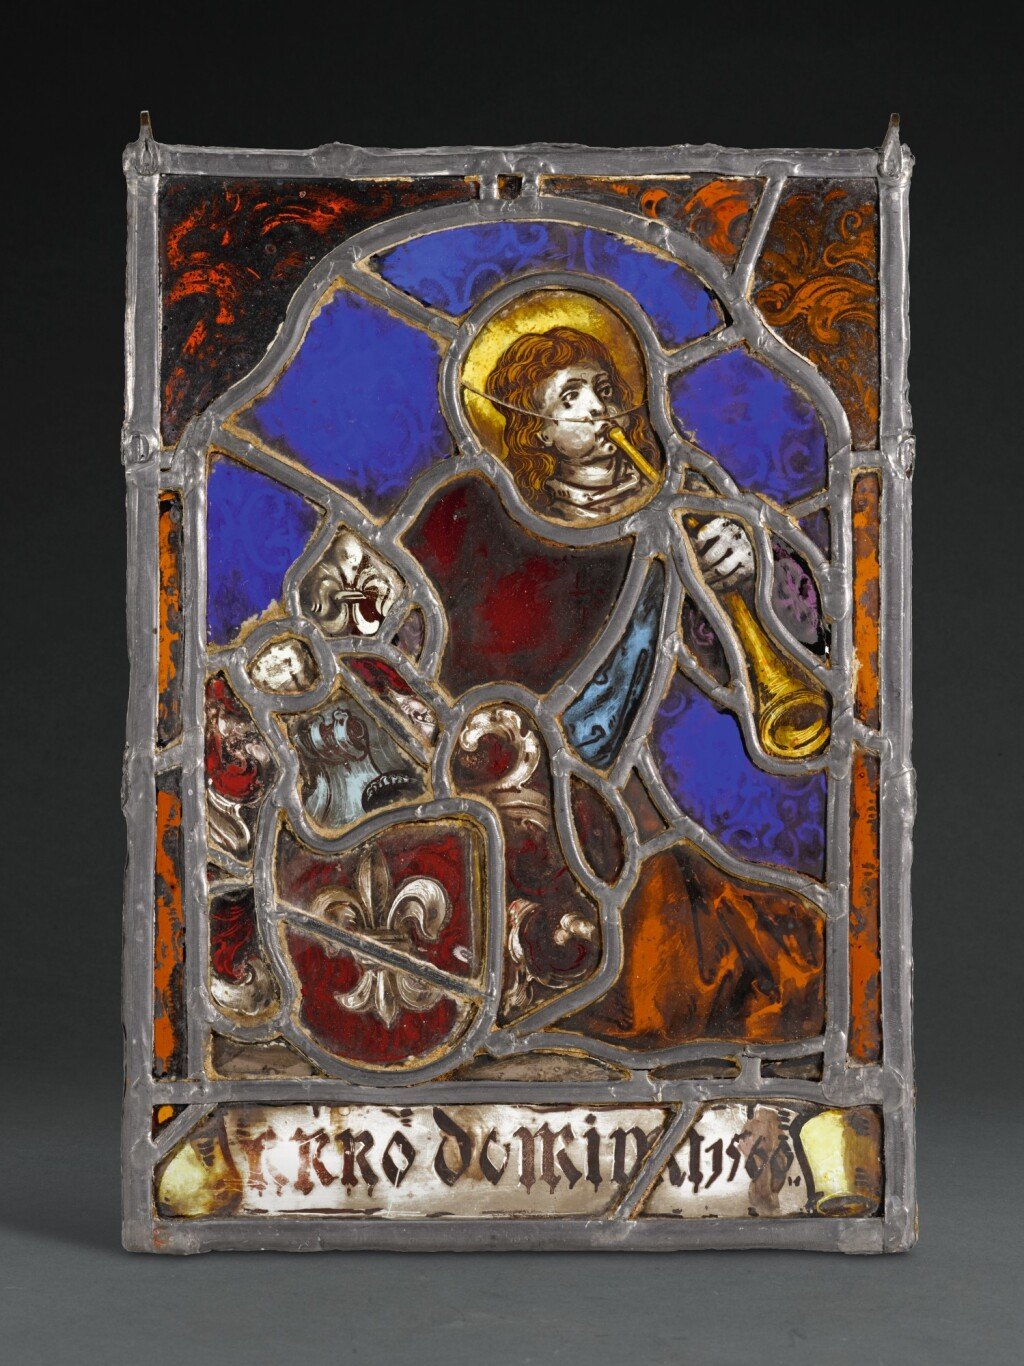 SOUTHERN GERMAN, CIRCA 1560 | ARMORIAL PANEL WITH A TRUMPETER